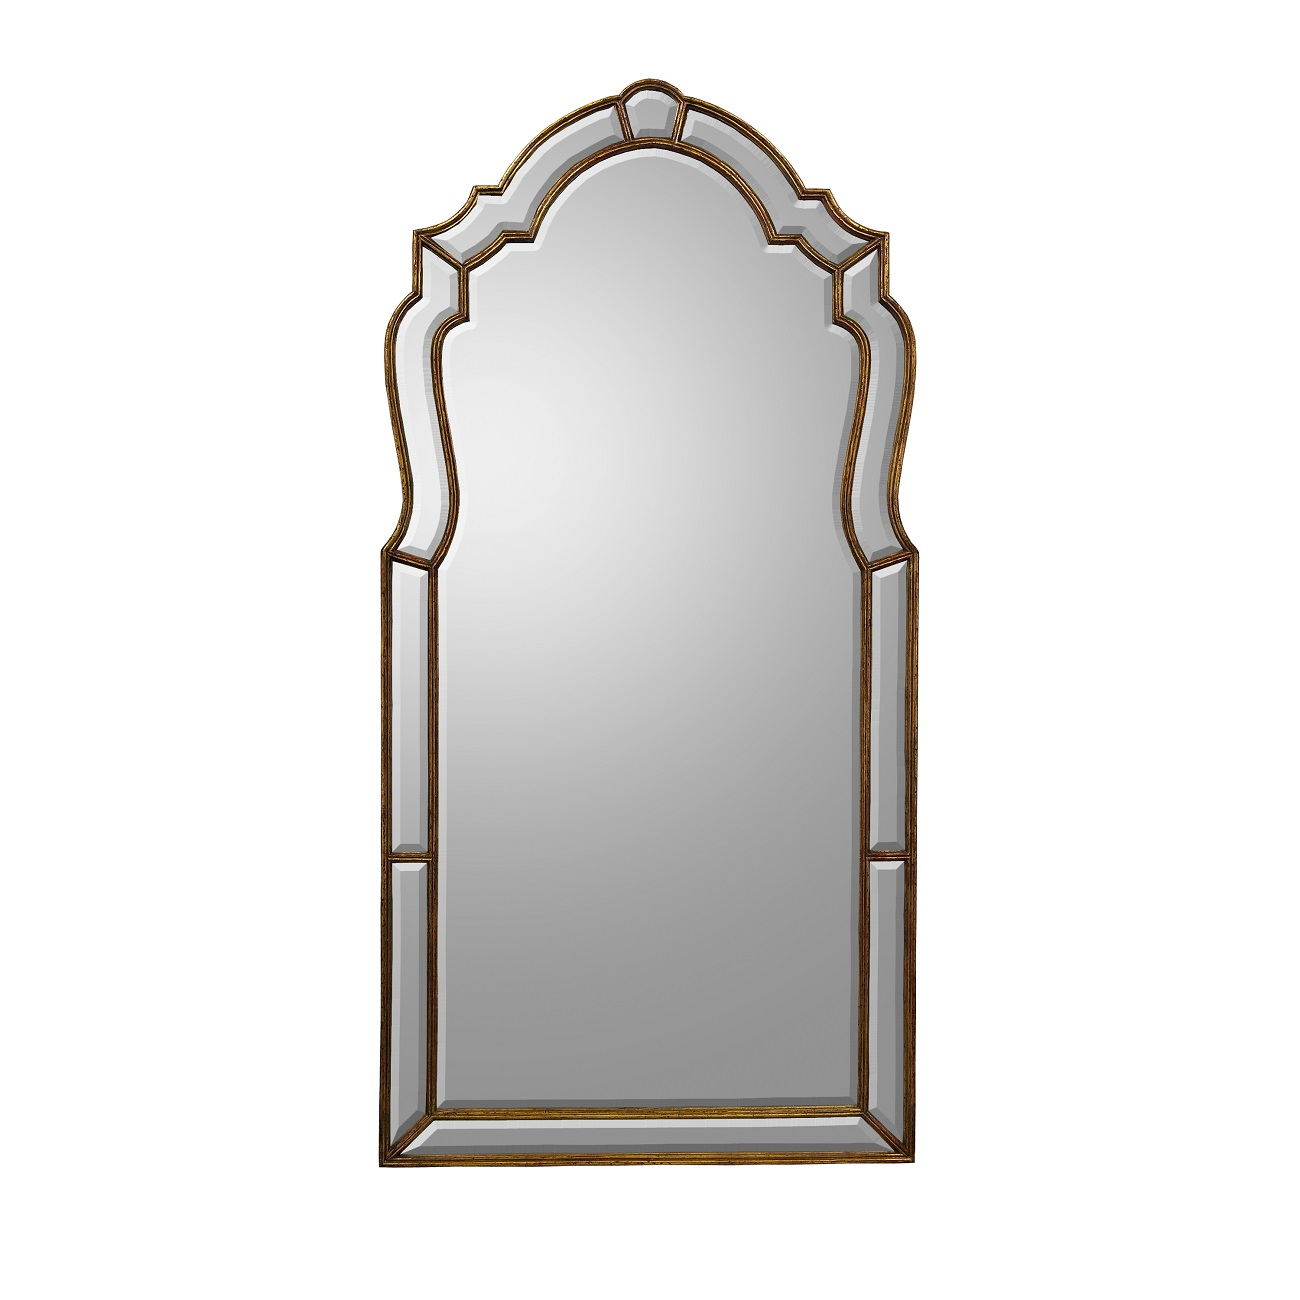 Wood Frame Bevel Mirror, John Richard Mirror